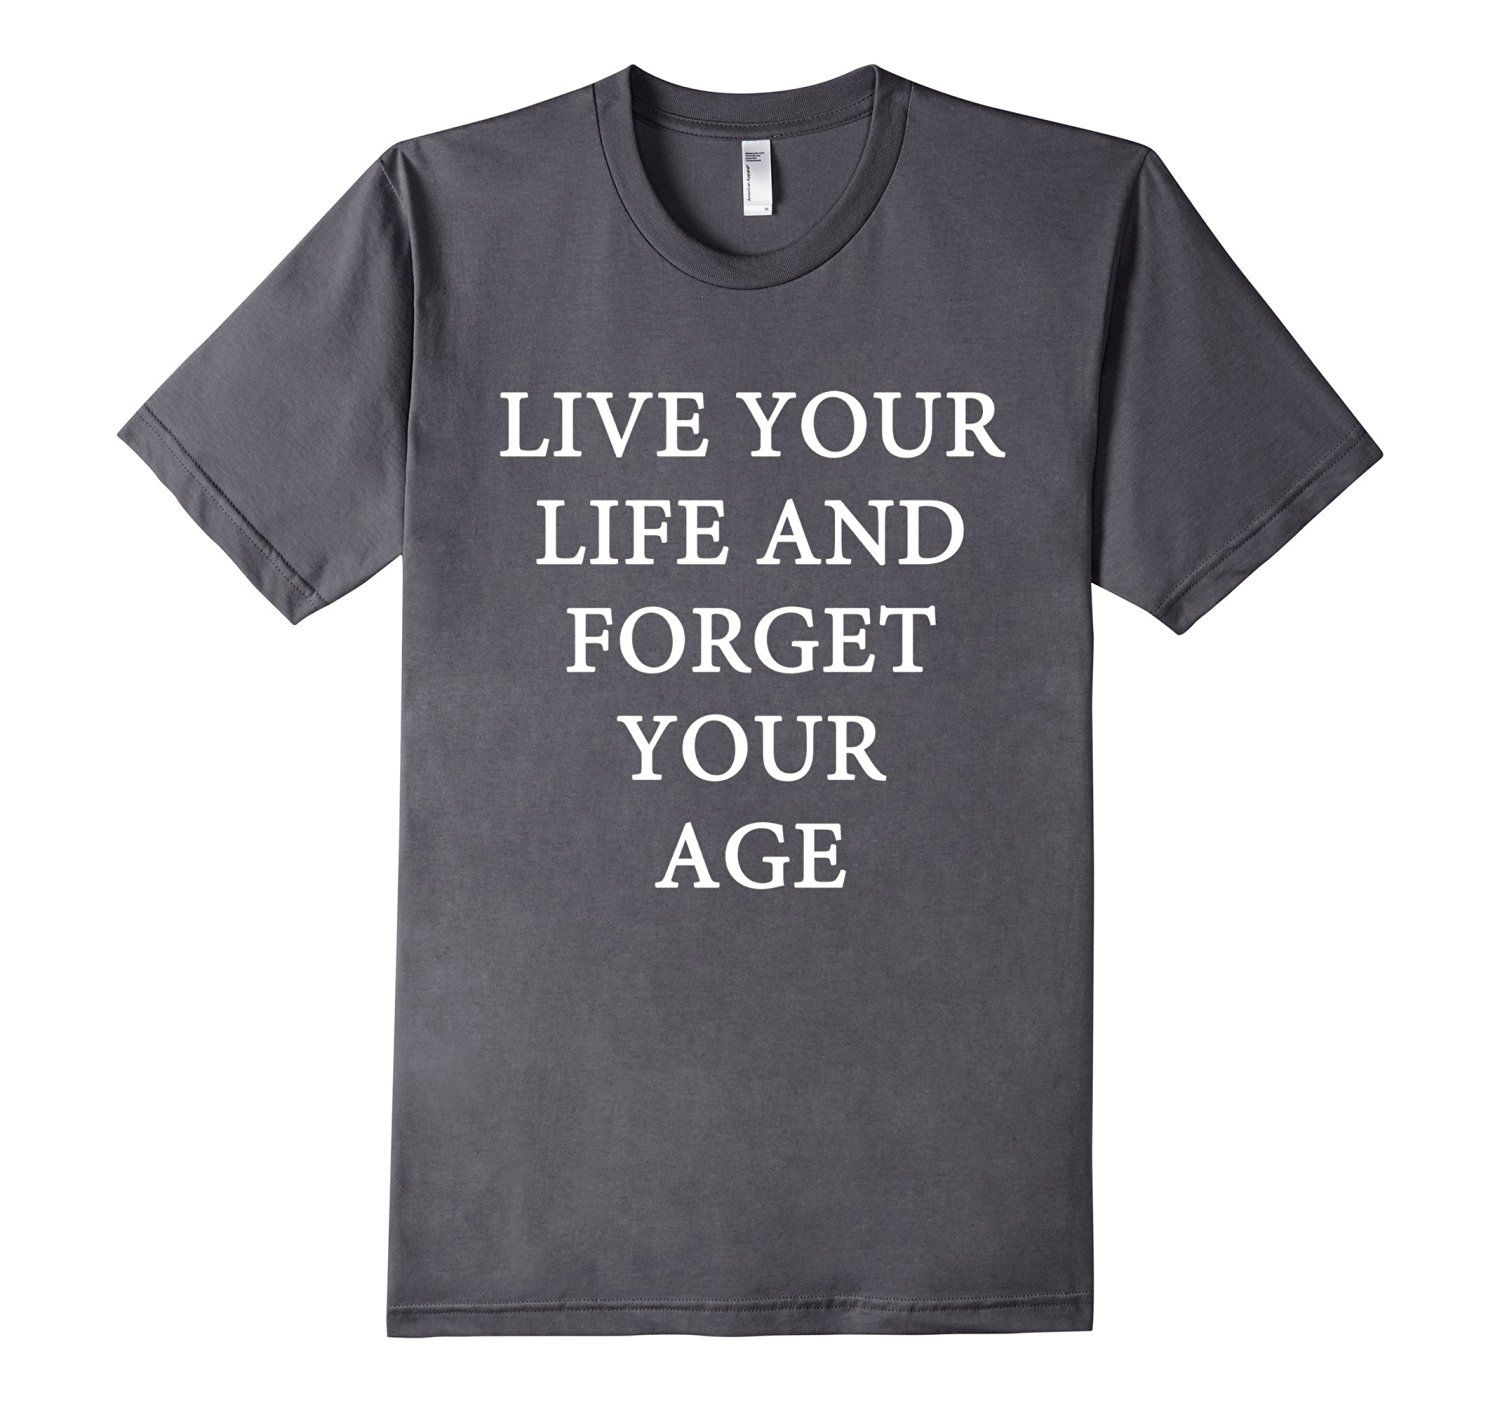 Amazon.com: Live your life and forget your age - Slim Fit T-shirt: Clothing